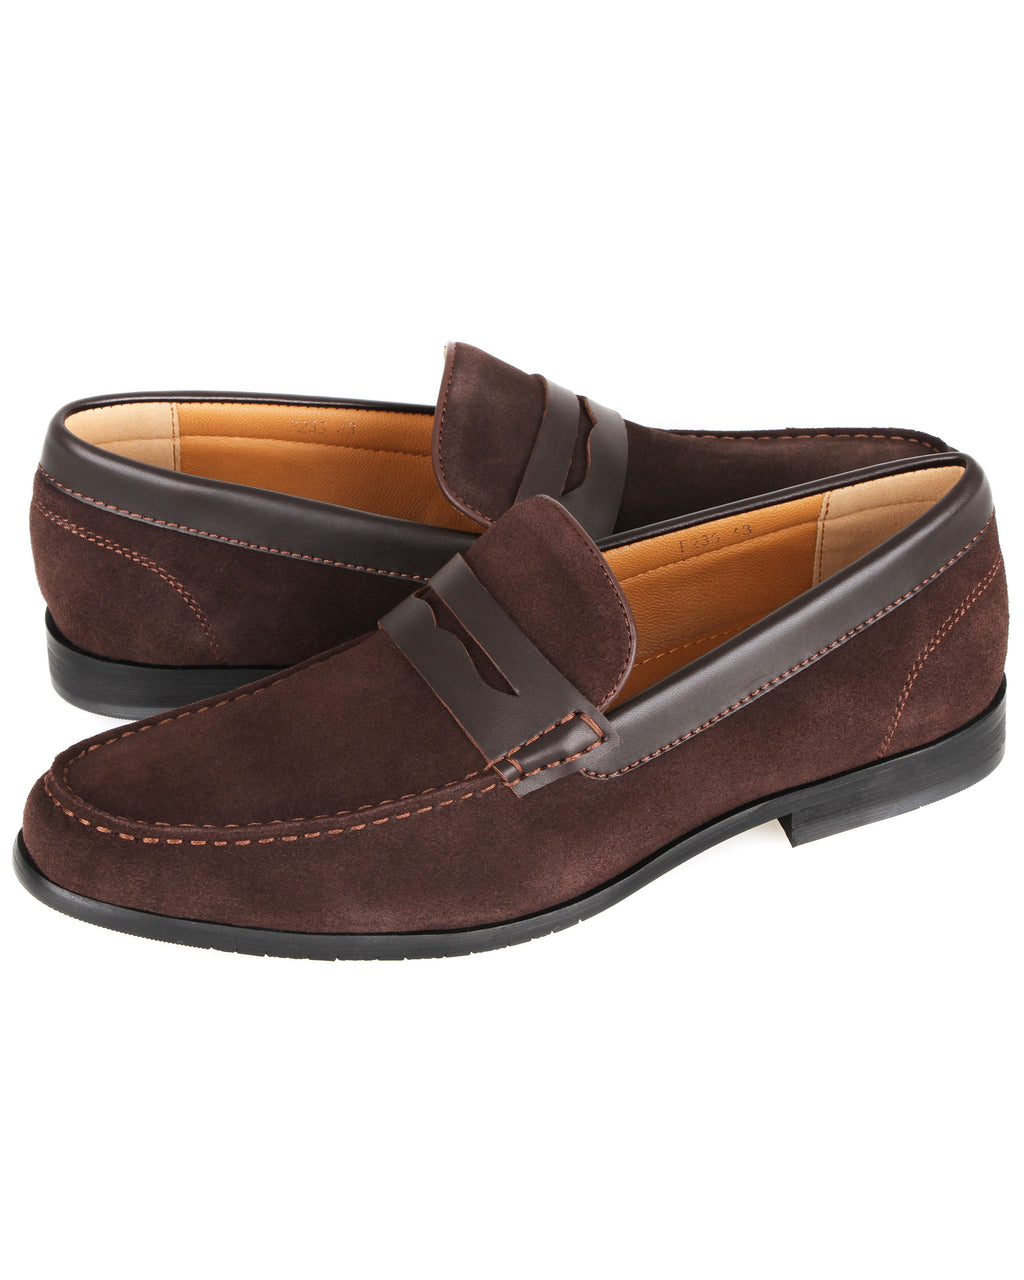 Tomaz F235 Suede Penny Loafers (Coffee)